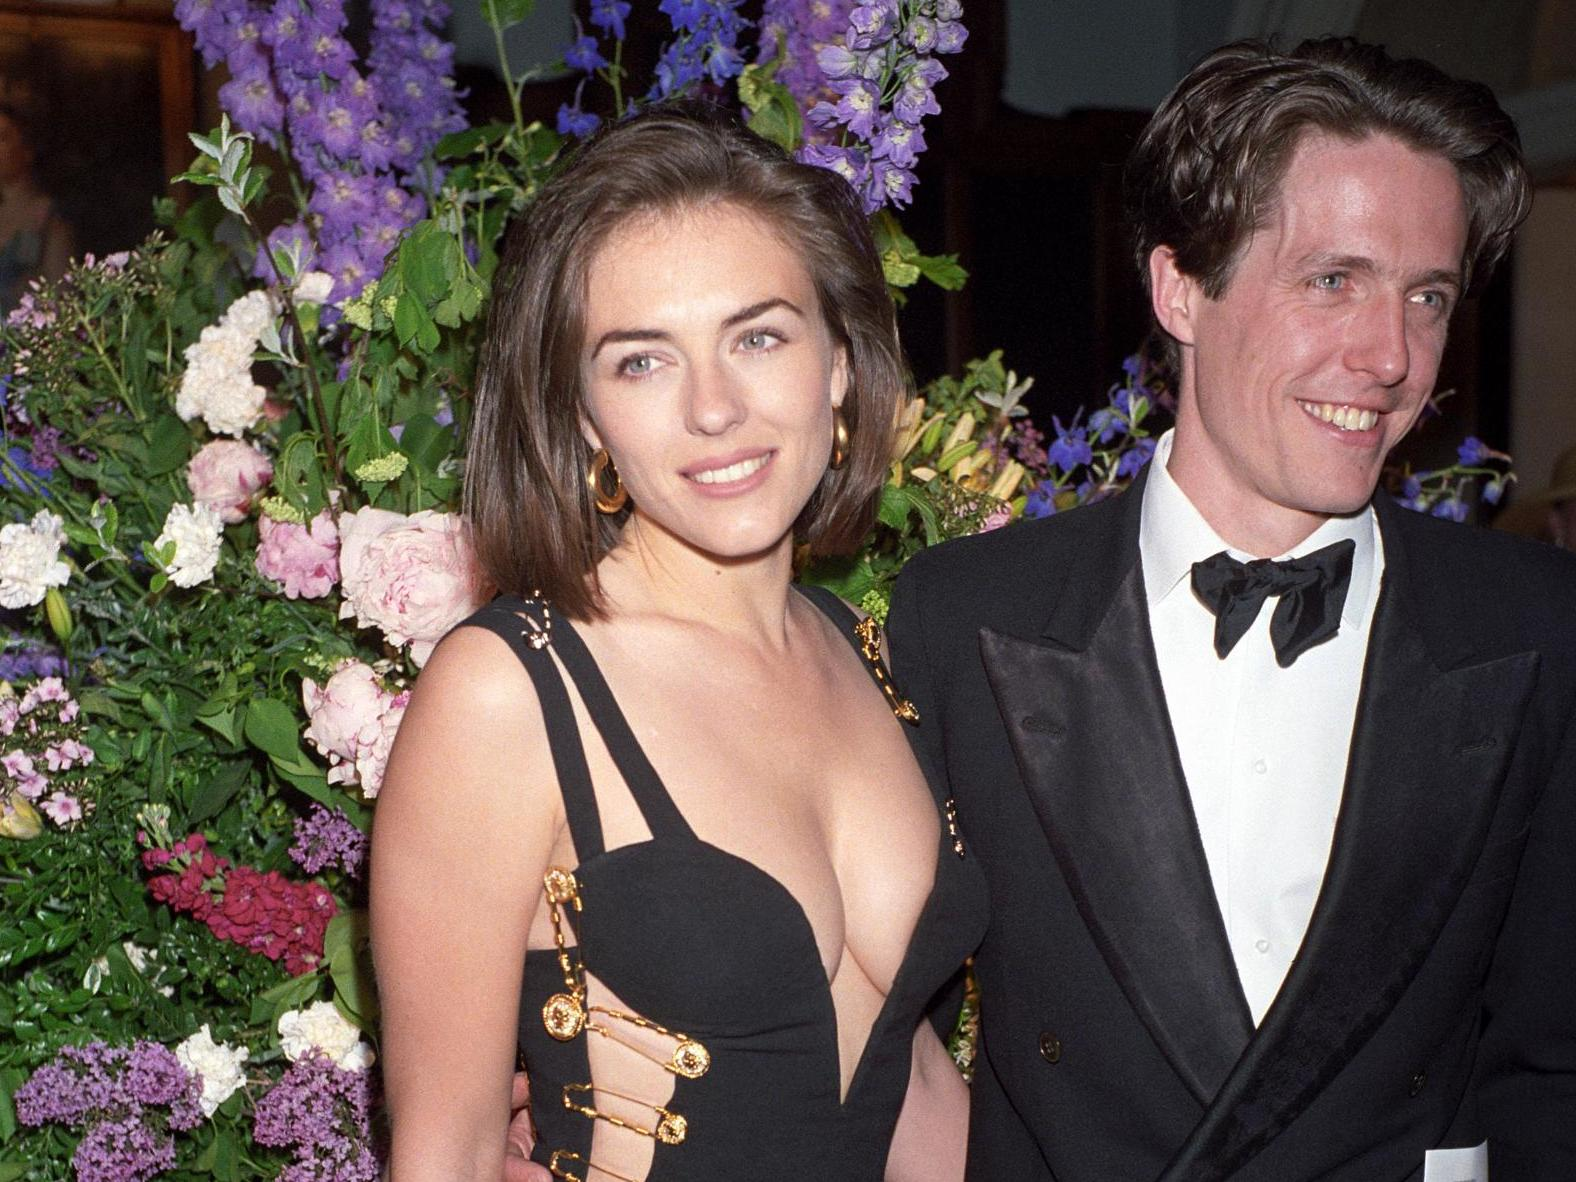 Elizabeth Hurley recreates iconic Versace safety pin dress 25 years on